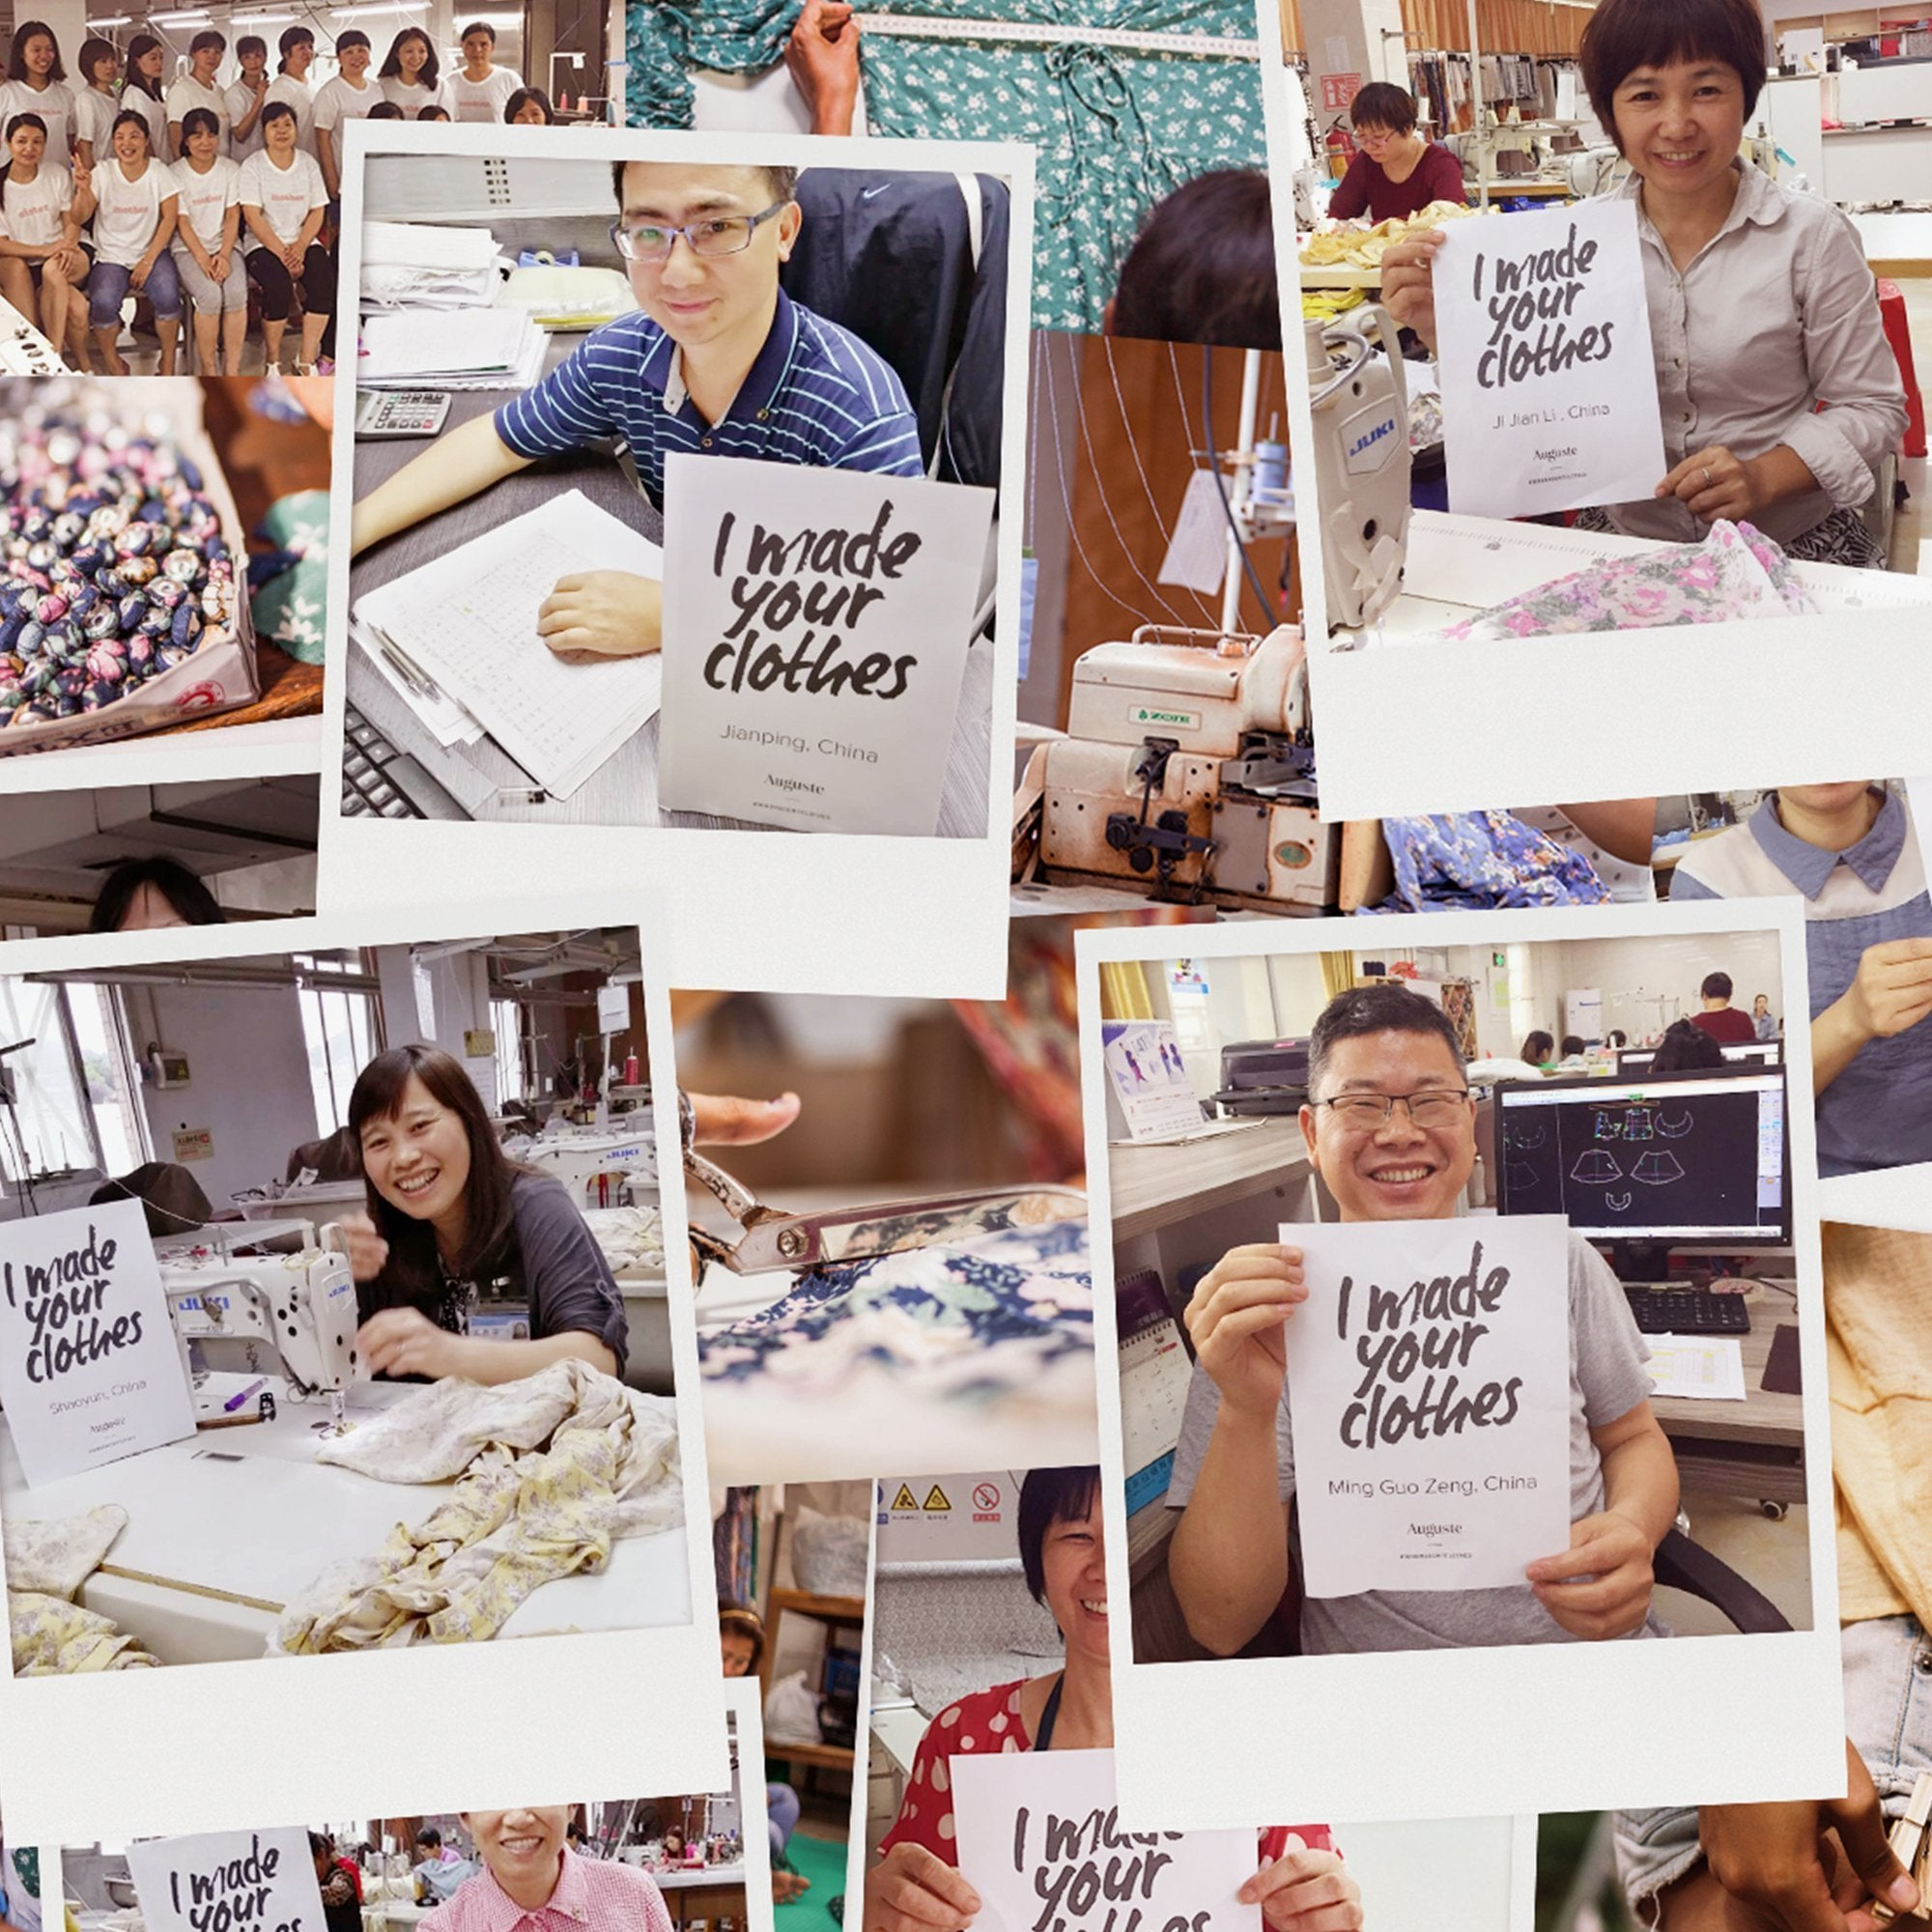 FASHION REVOLUTION: WHO MADE MY CLOTHES